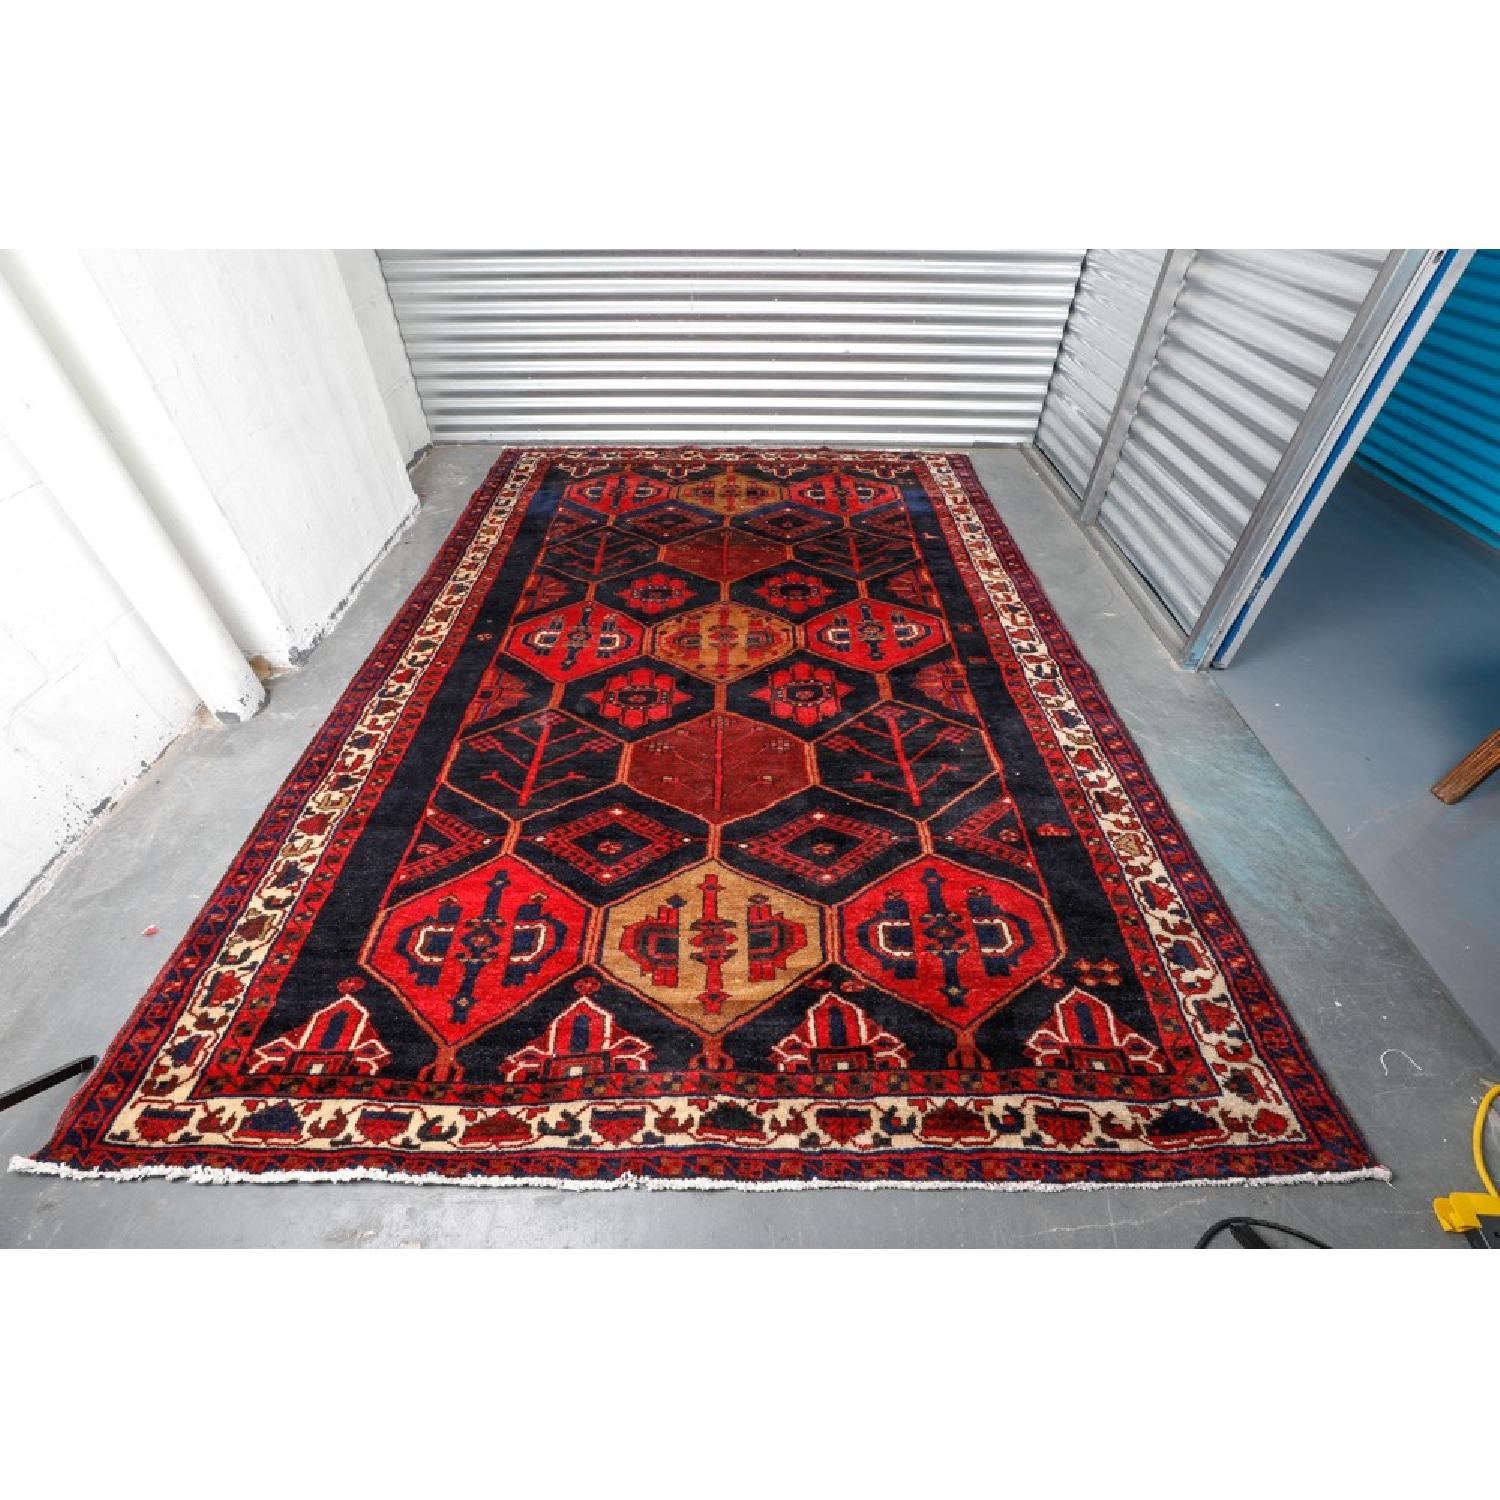 ABC Carpet and Home Patterned Area Rug - image-3